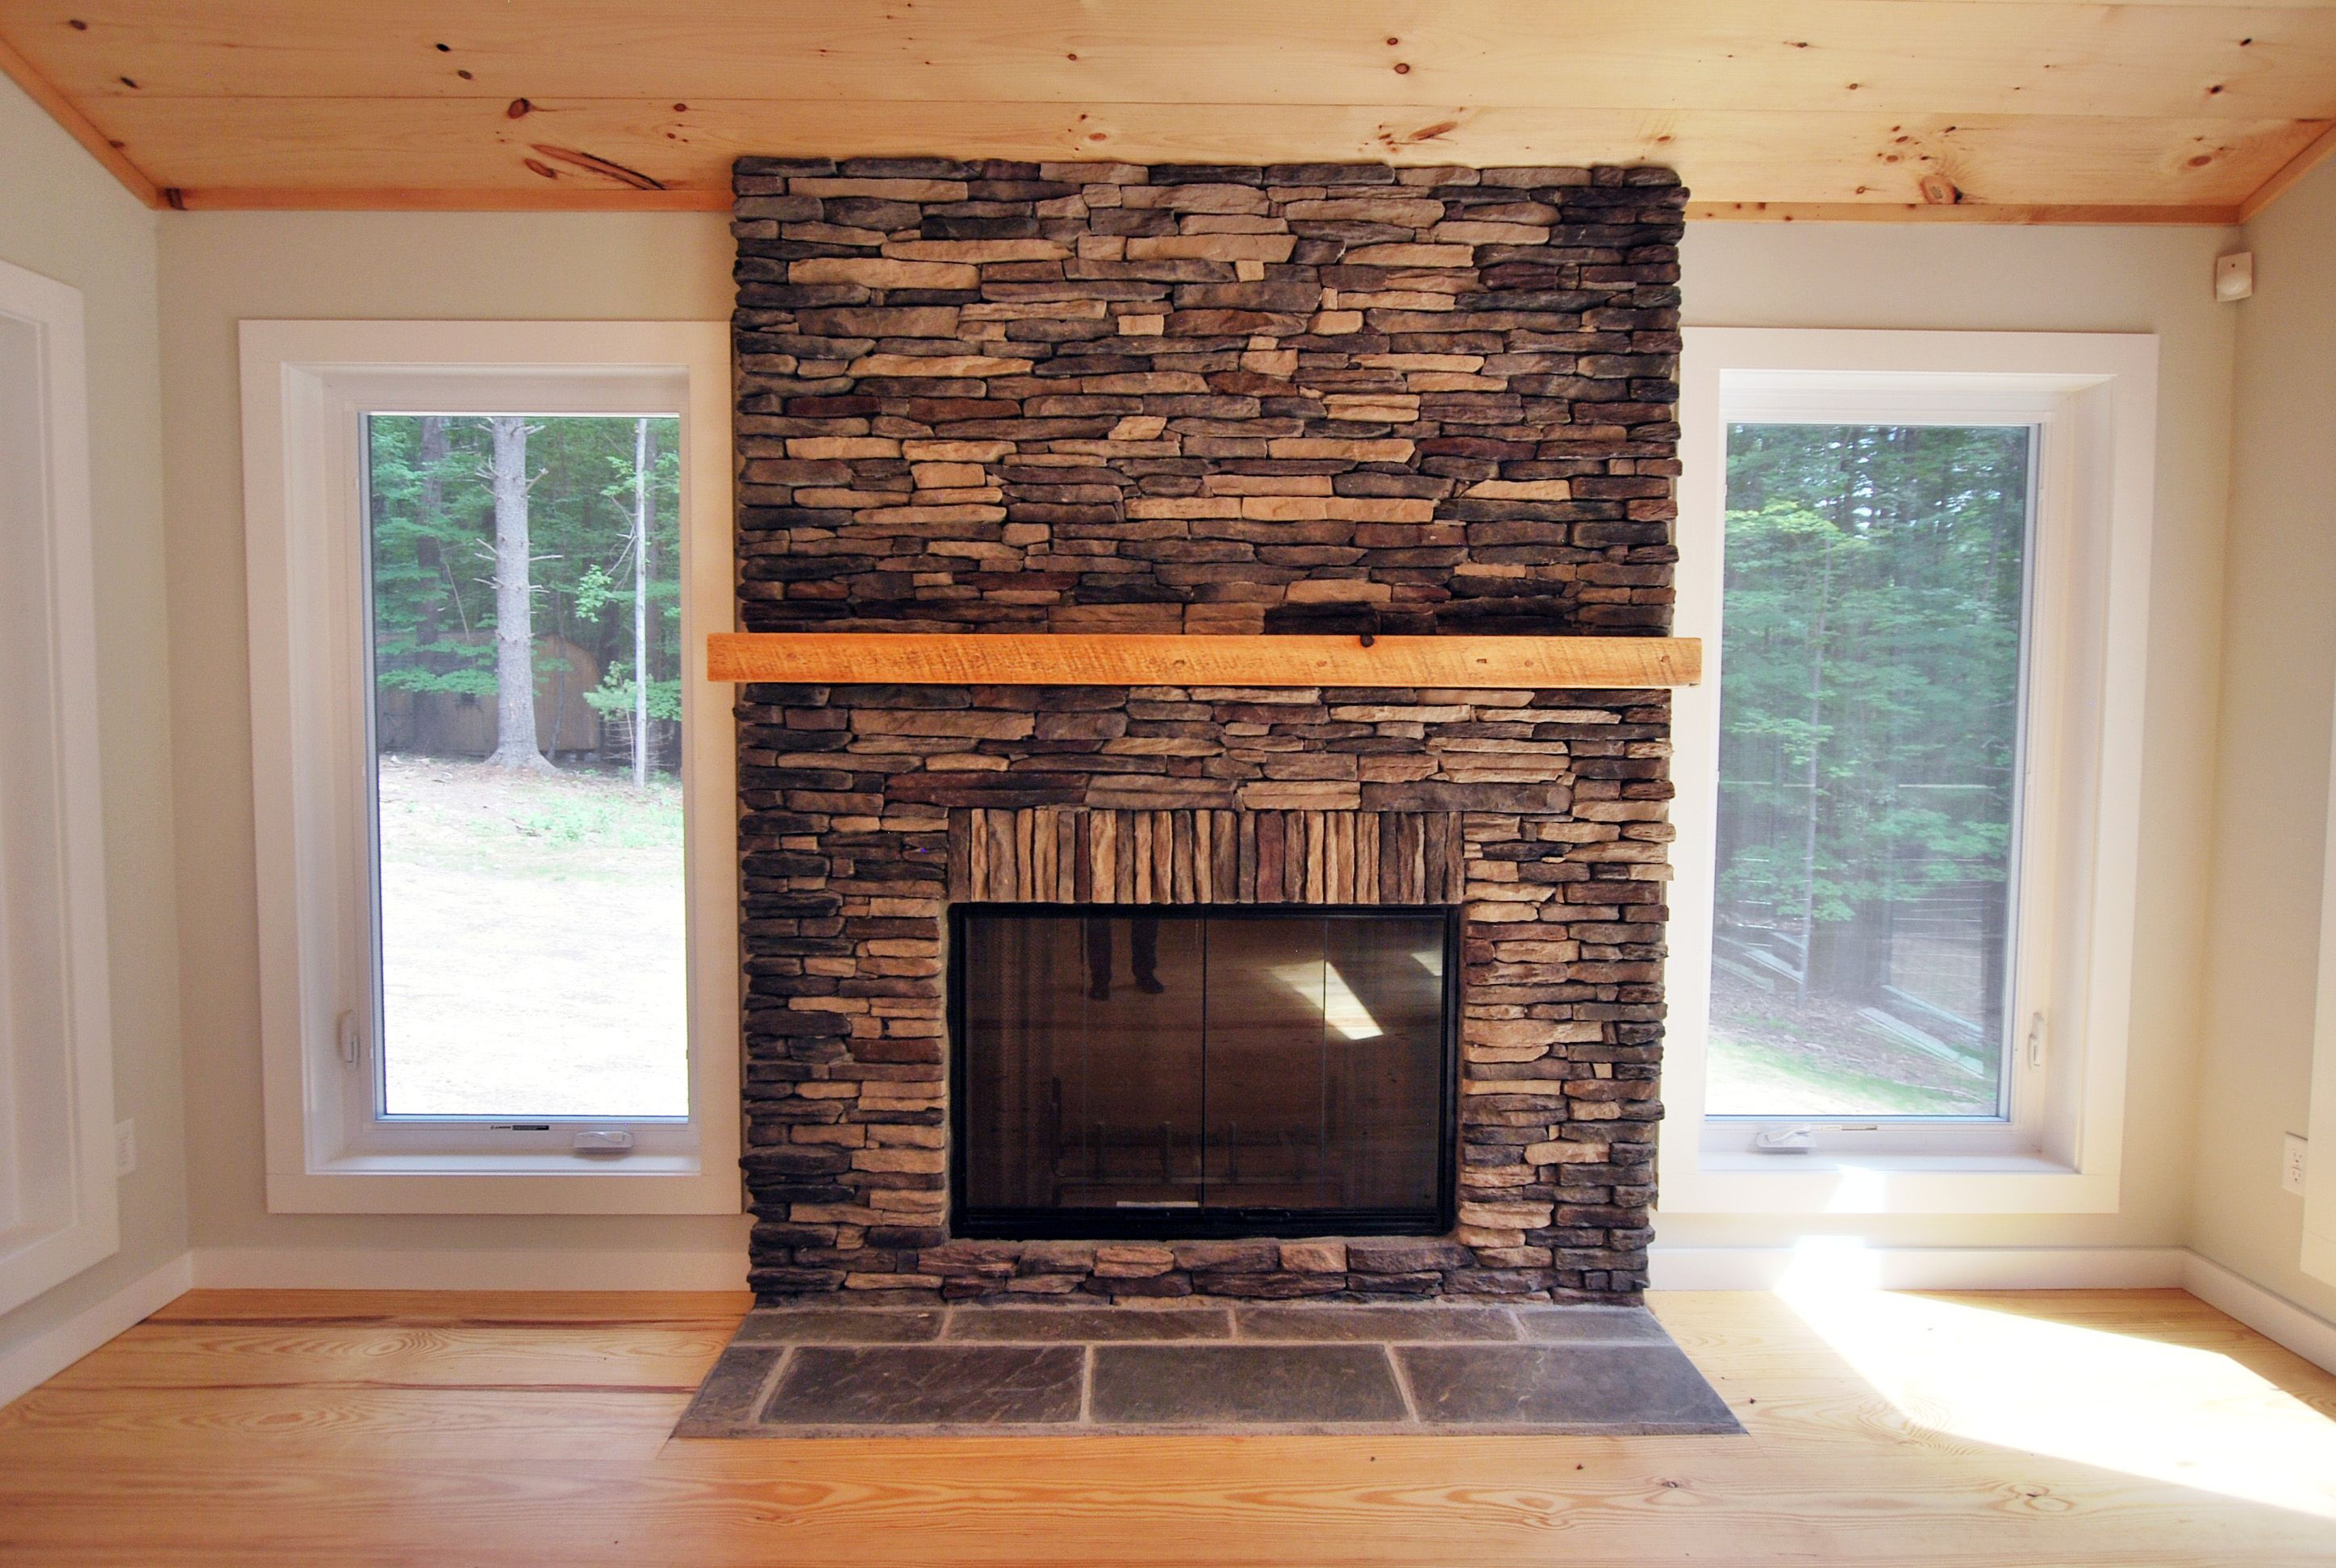 hardwood flooring franklin nc of tennessee laurel cavern ledge stone with a smooth beam mantel for tennessee laurel cavern ledge stone with a smooth beam mantel catskillfarms